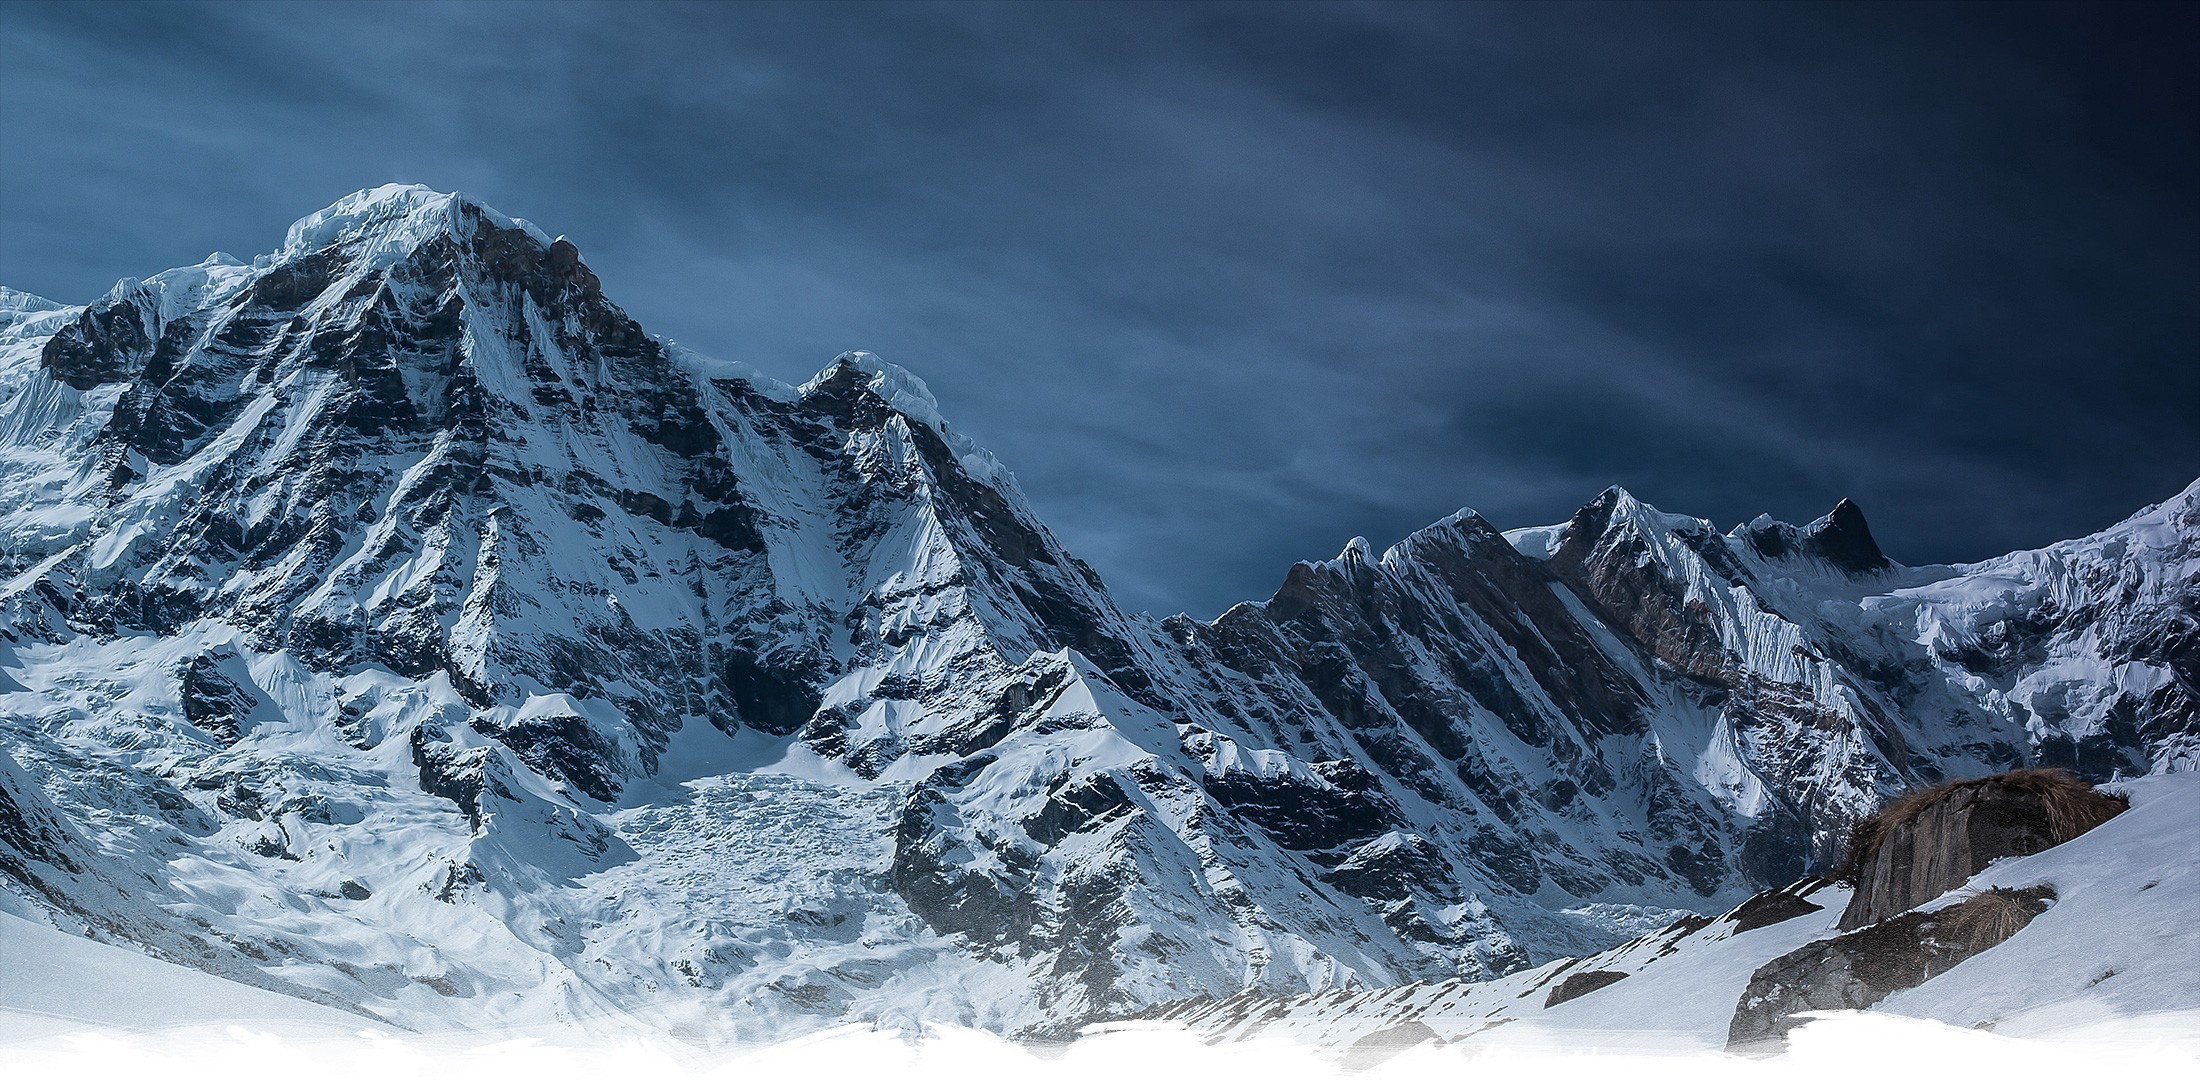 Res: 2200x1080, mountains snowy peak wallpaper and background